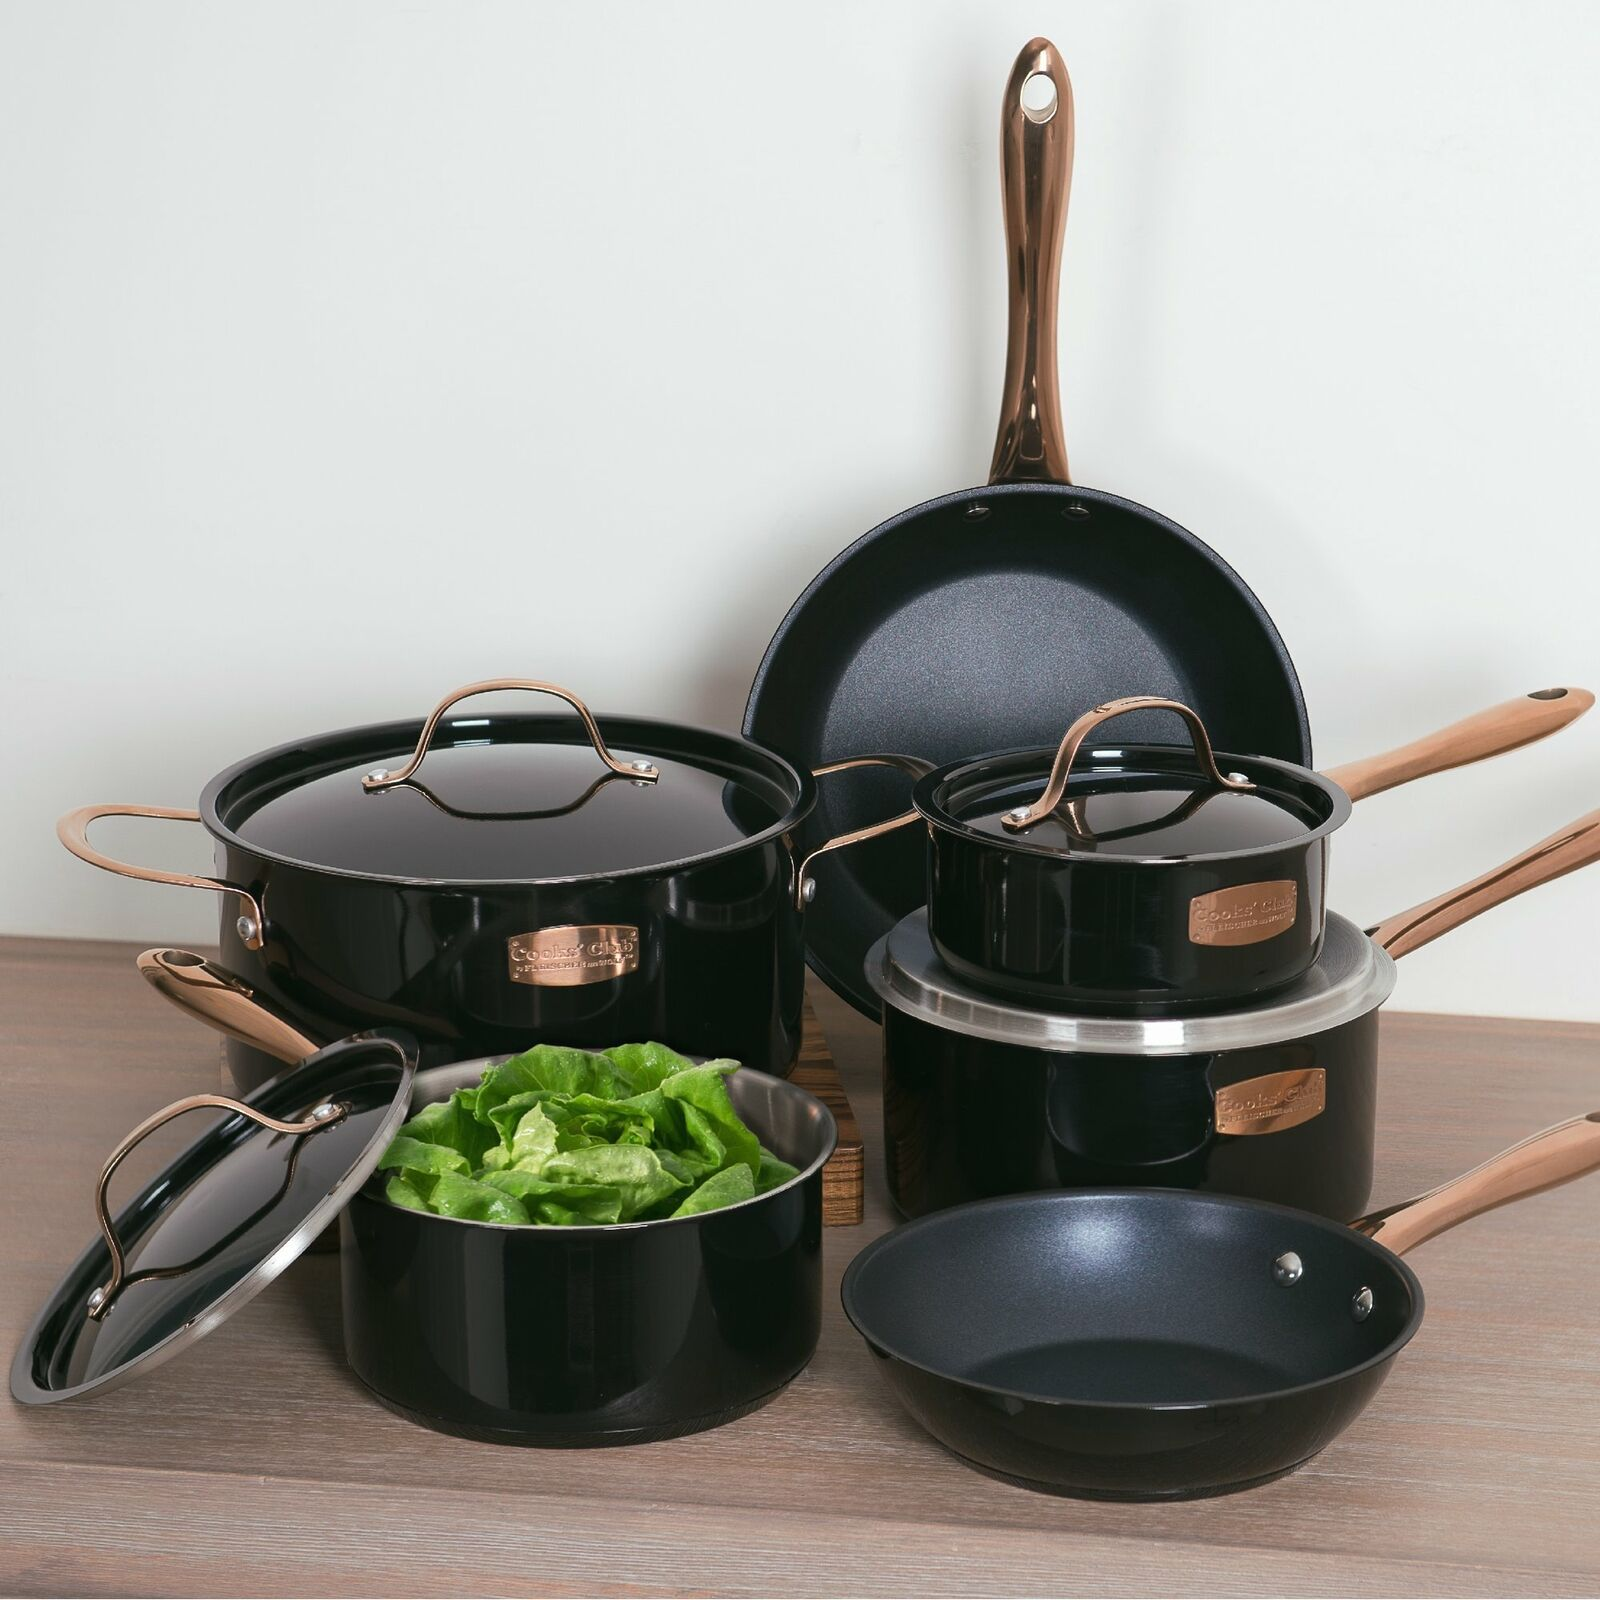 10pc Cookware Set Cooks Club Stainless Steel Copper Pots Pan